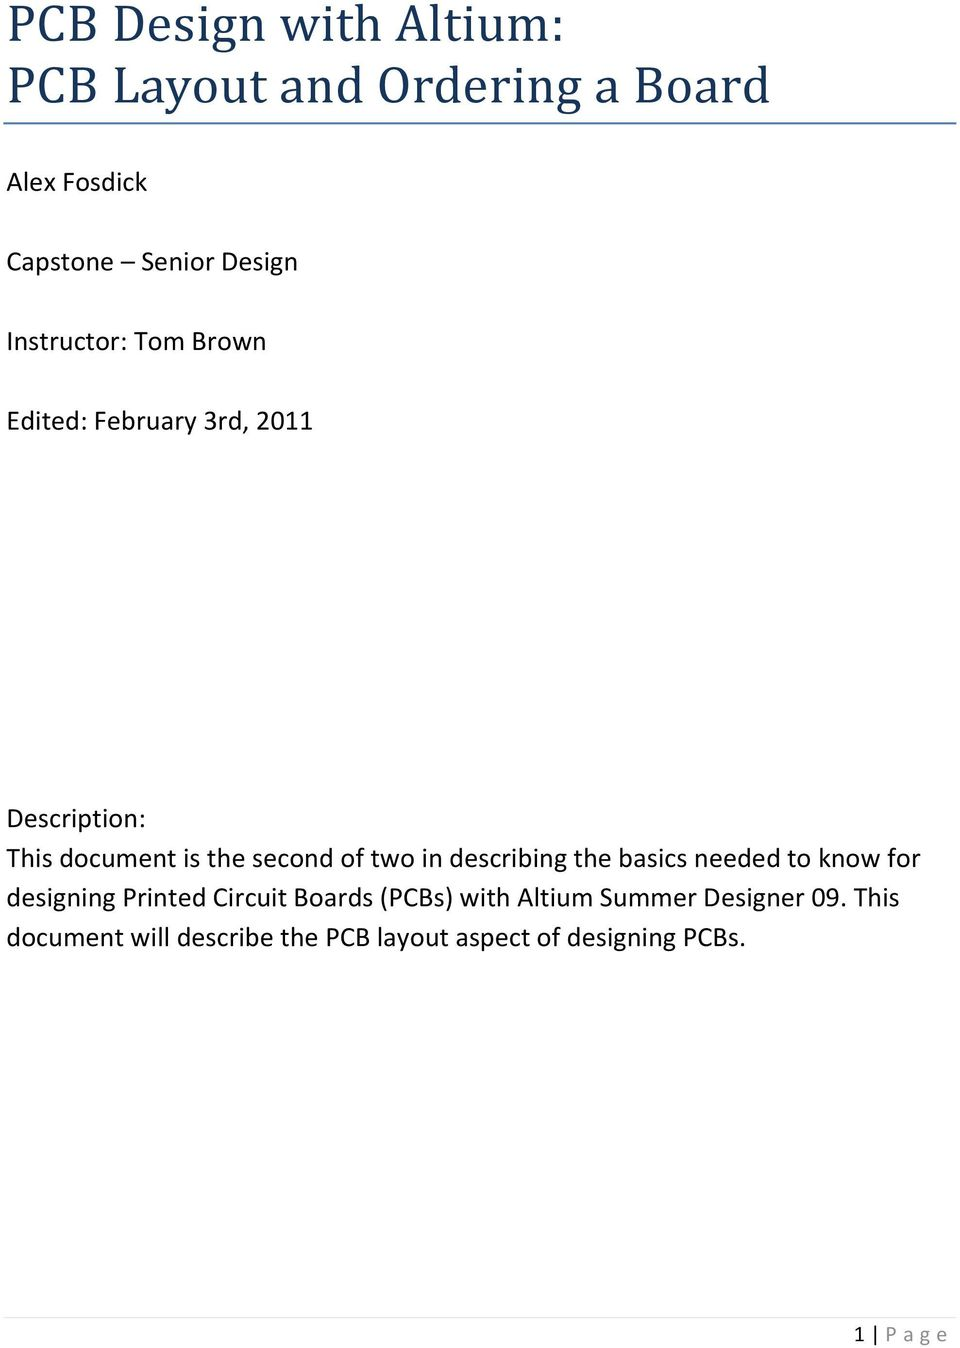 PCB Design with Altium: PCB Layout and Ordering a Board - PDF